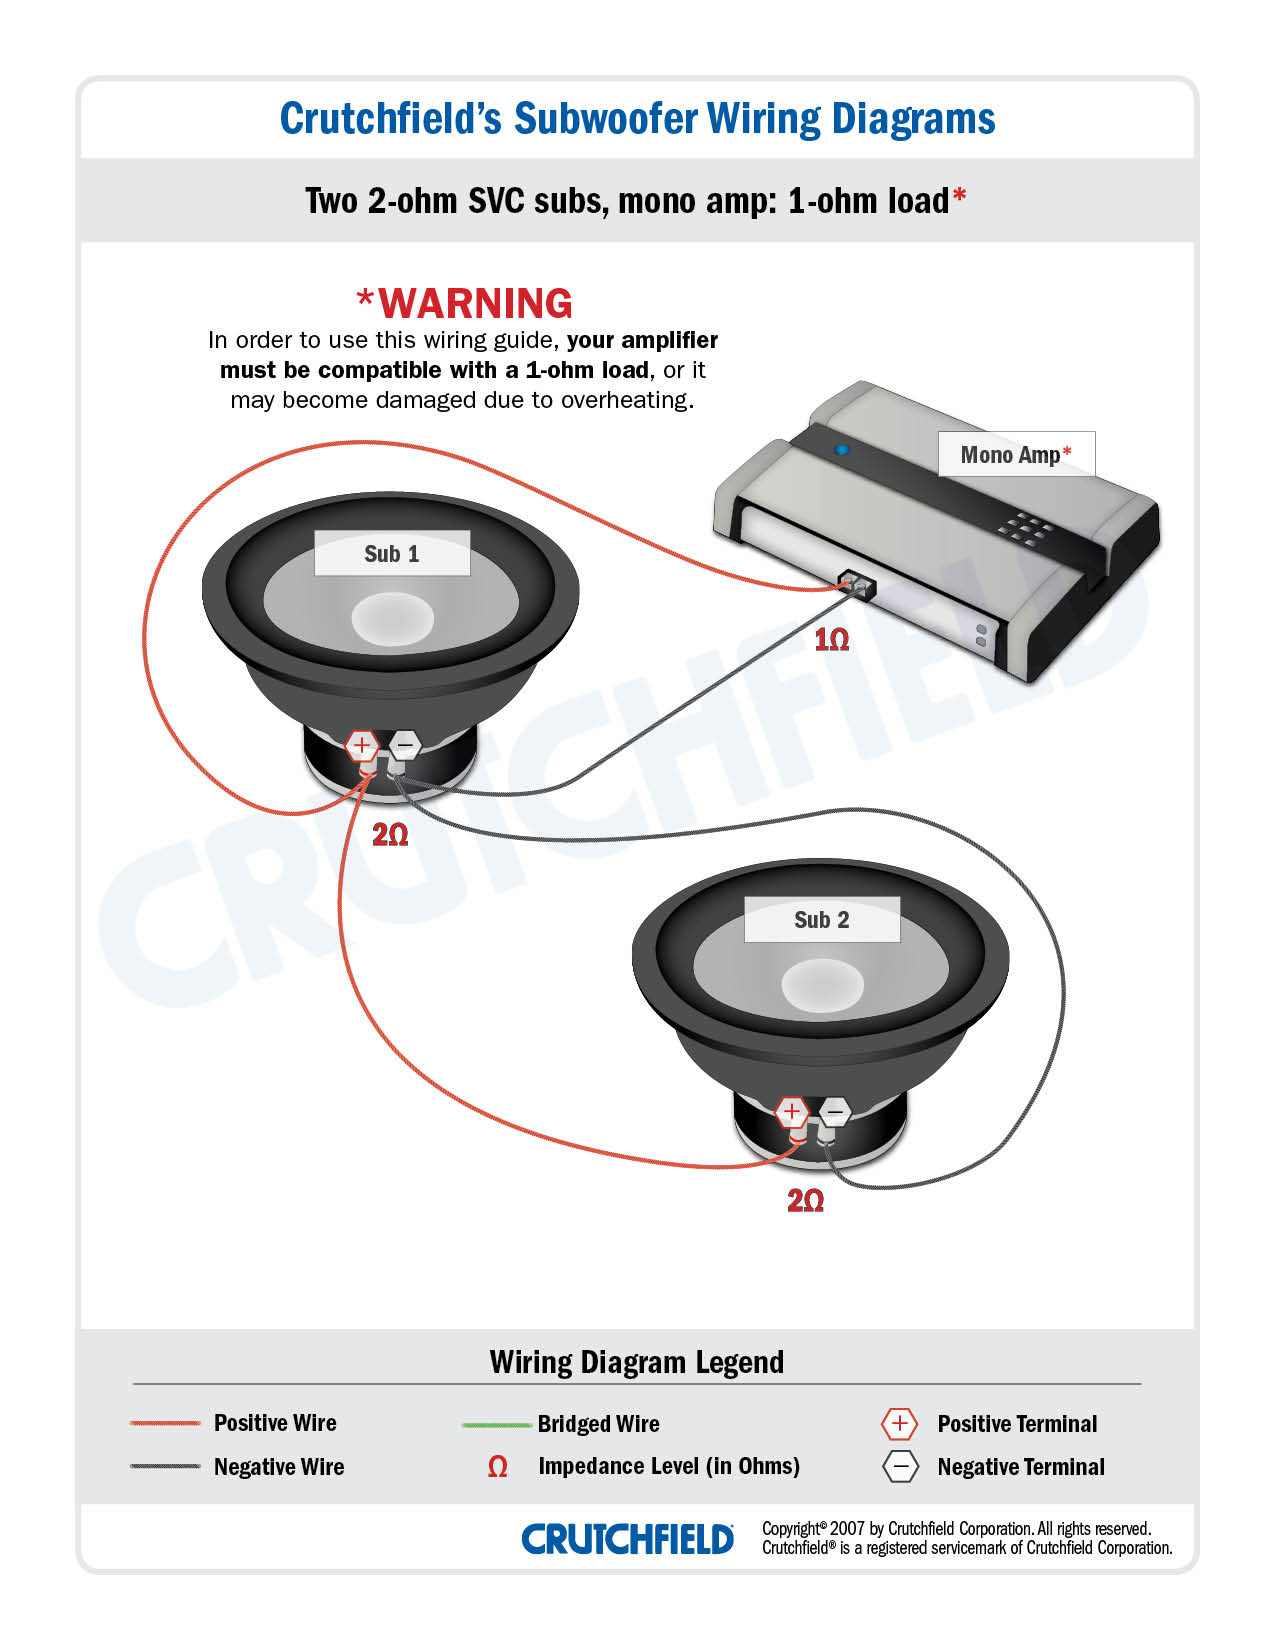 kicker comp r wiring diagram with Tuning on Tuning in addition Wiring Diagram Vr in addition Kicker Subwoofer Wiring Diagram further Showthread moreover One 4 Ohm Kicker.